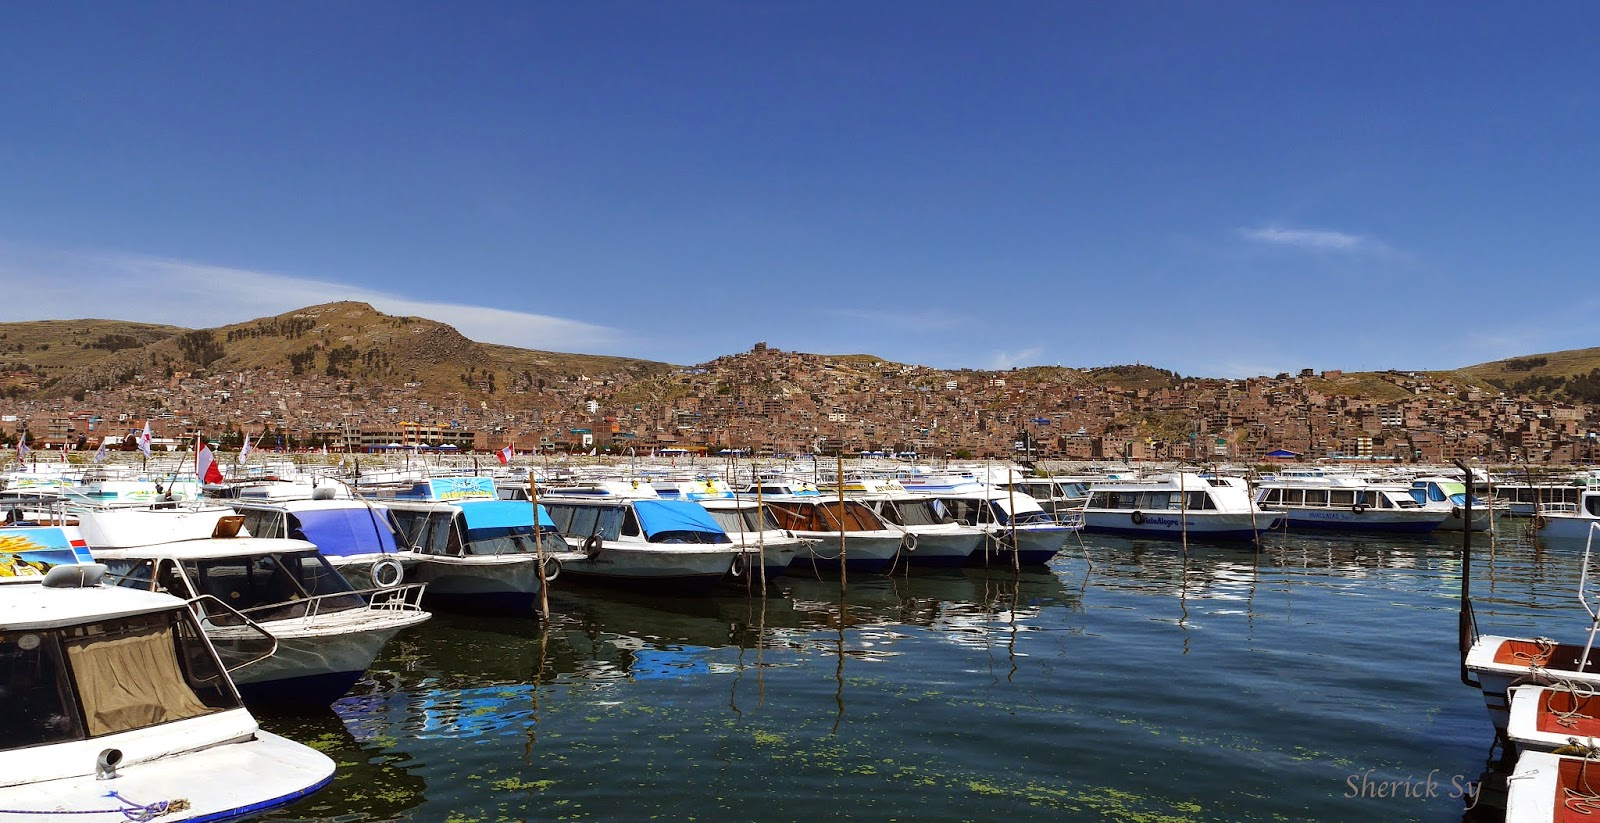 Jetty and Town of Puno, Peru